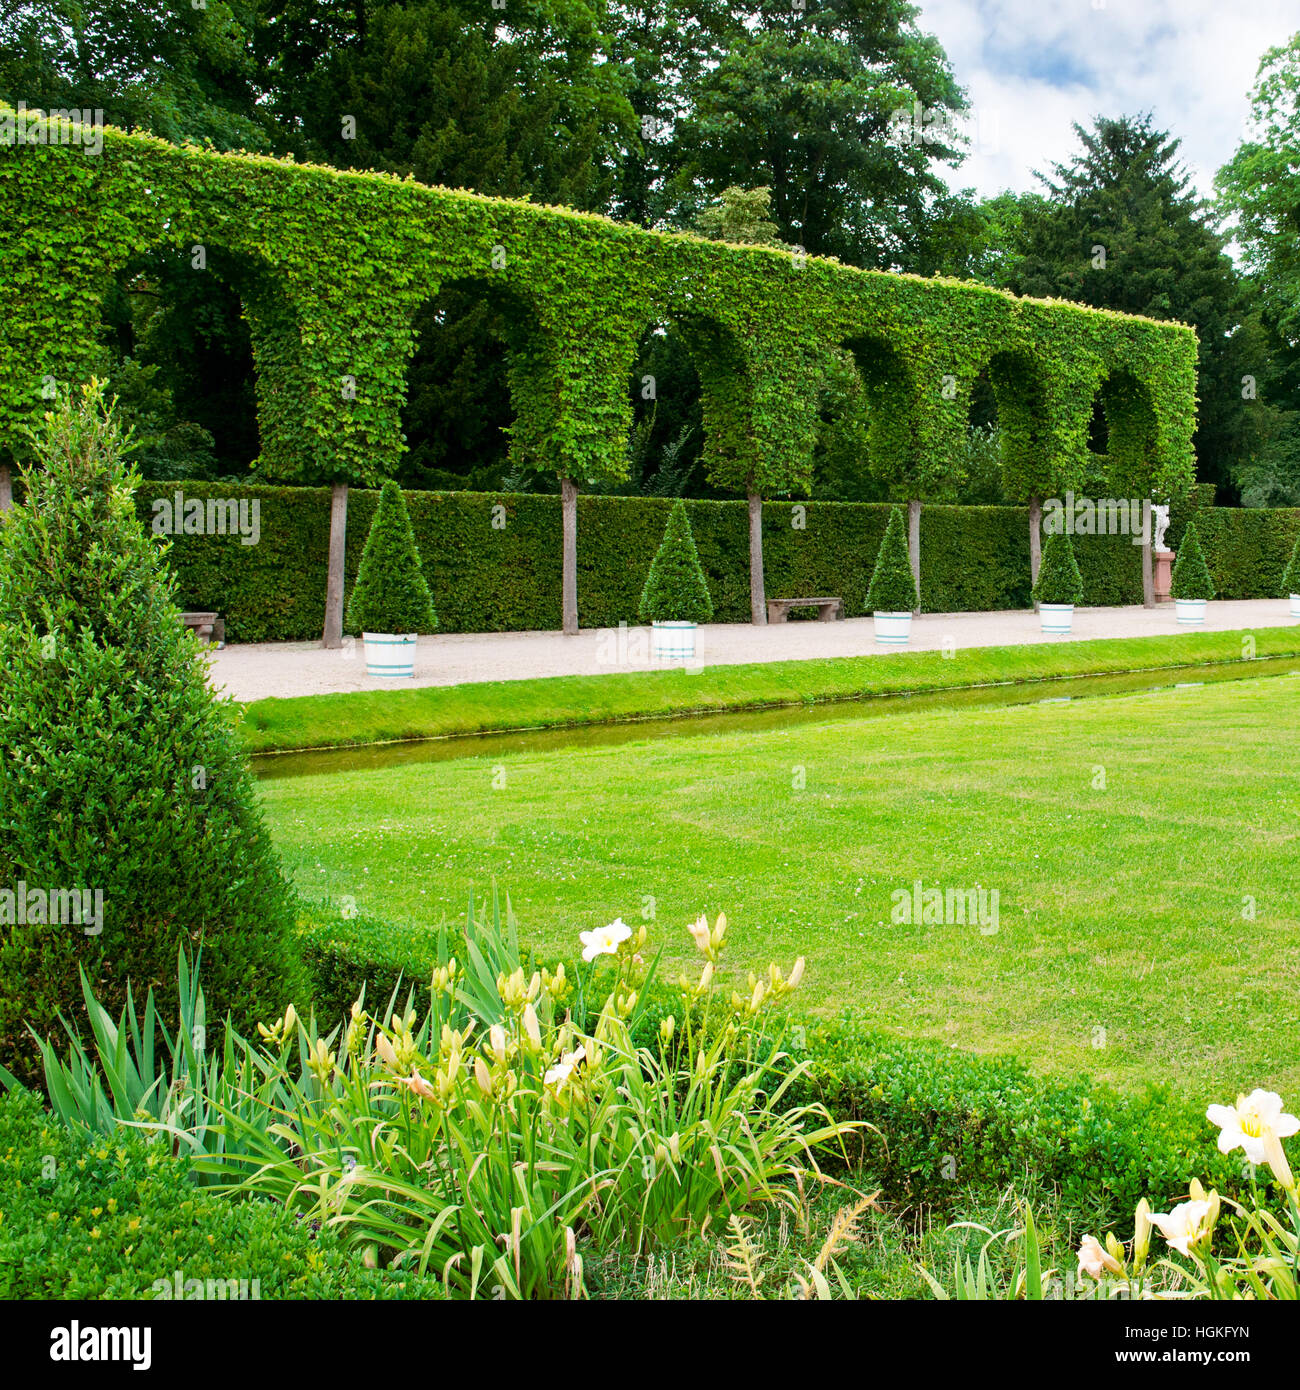 lawn and hedge in a summer park - Stock Image